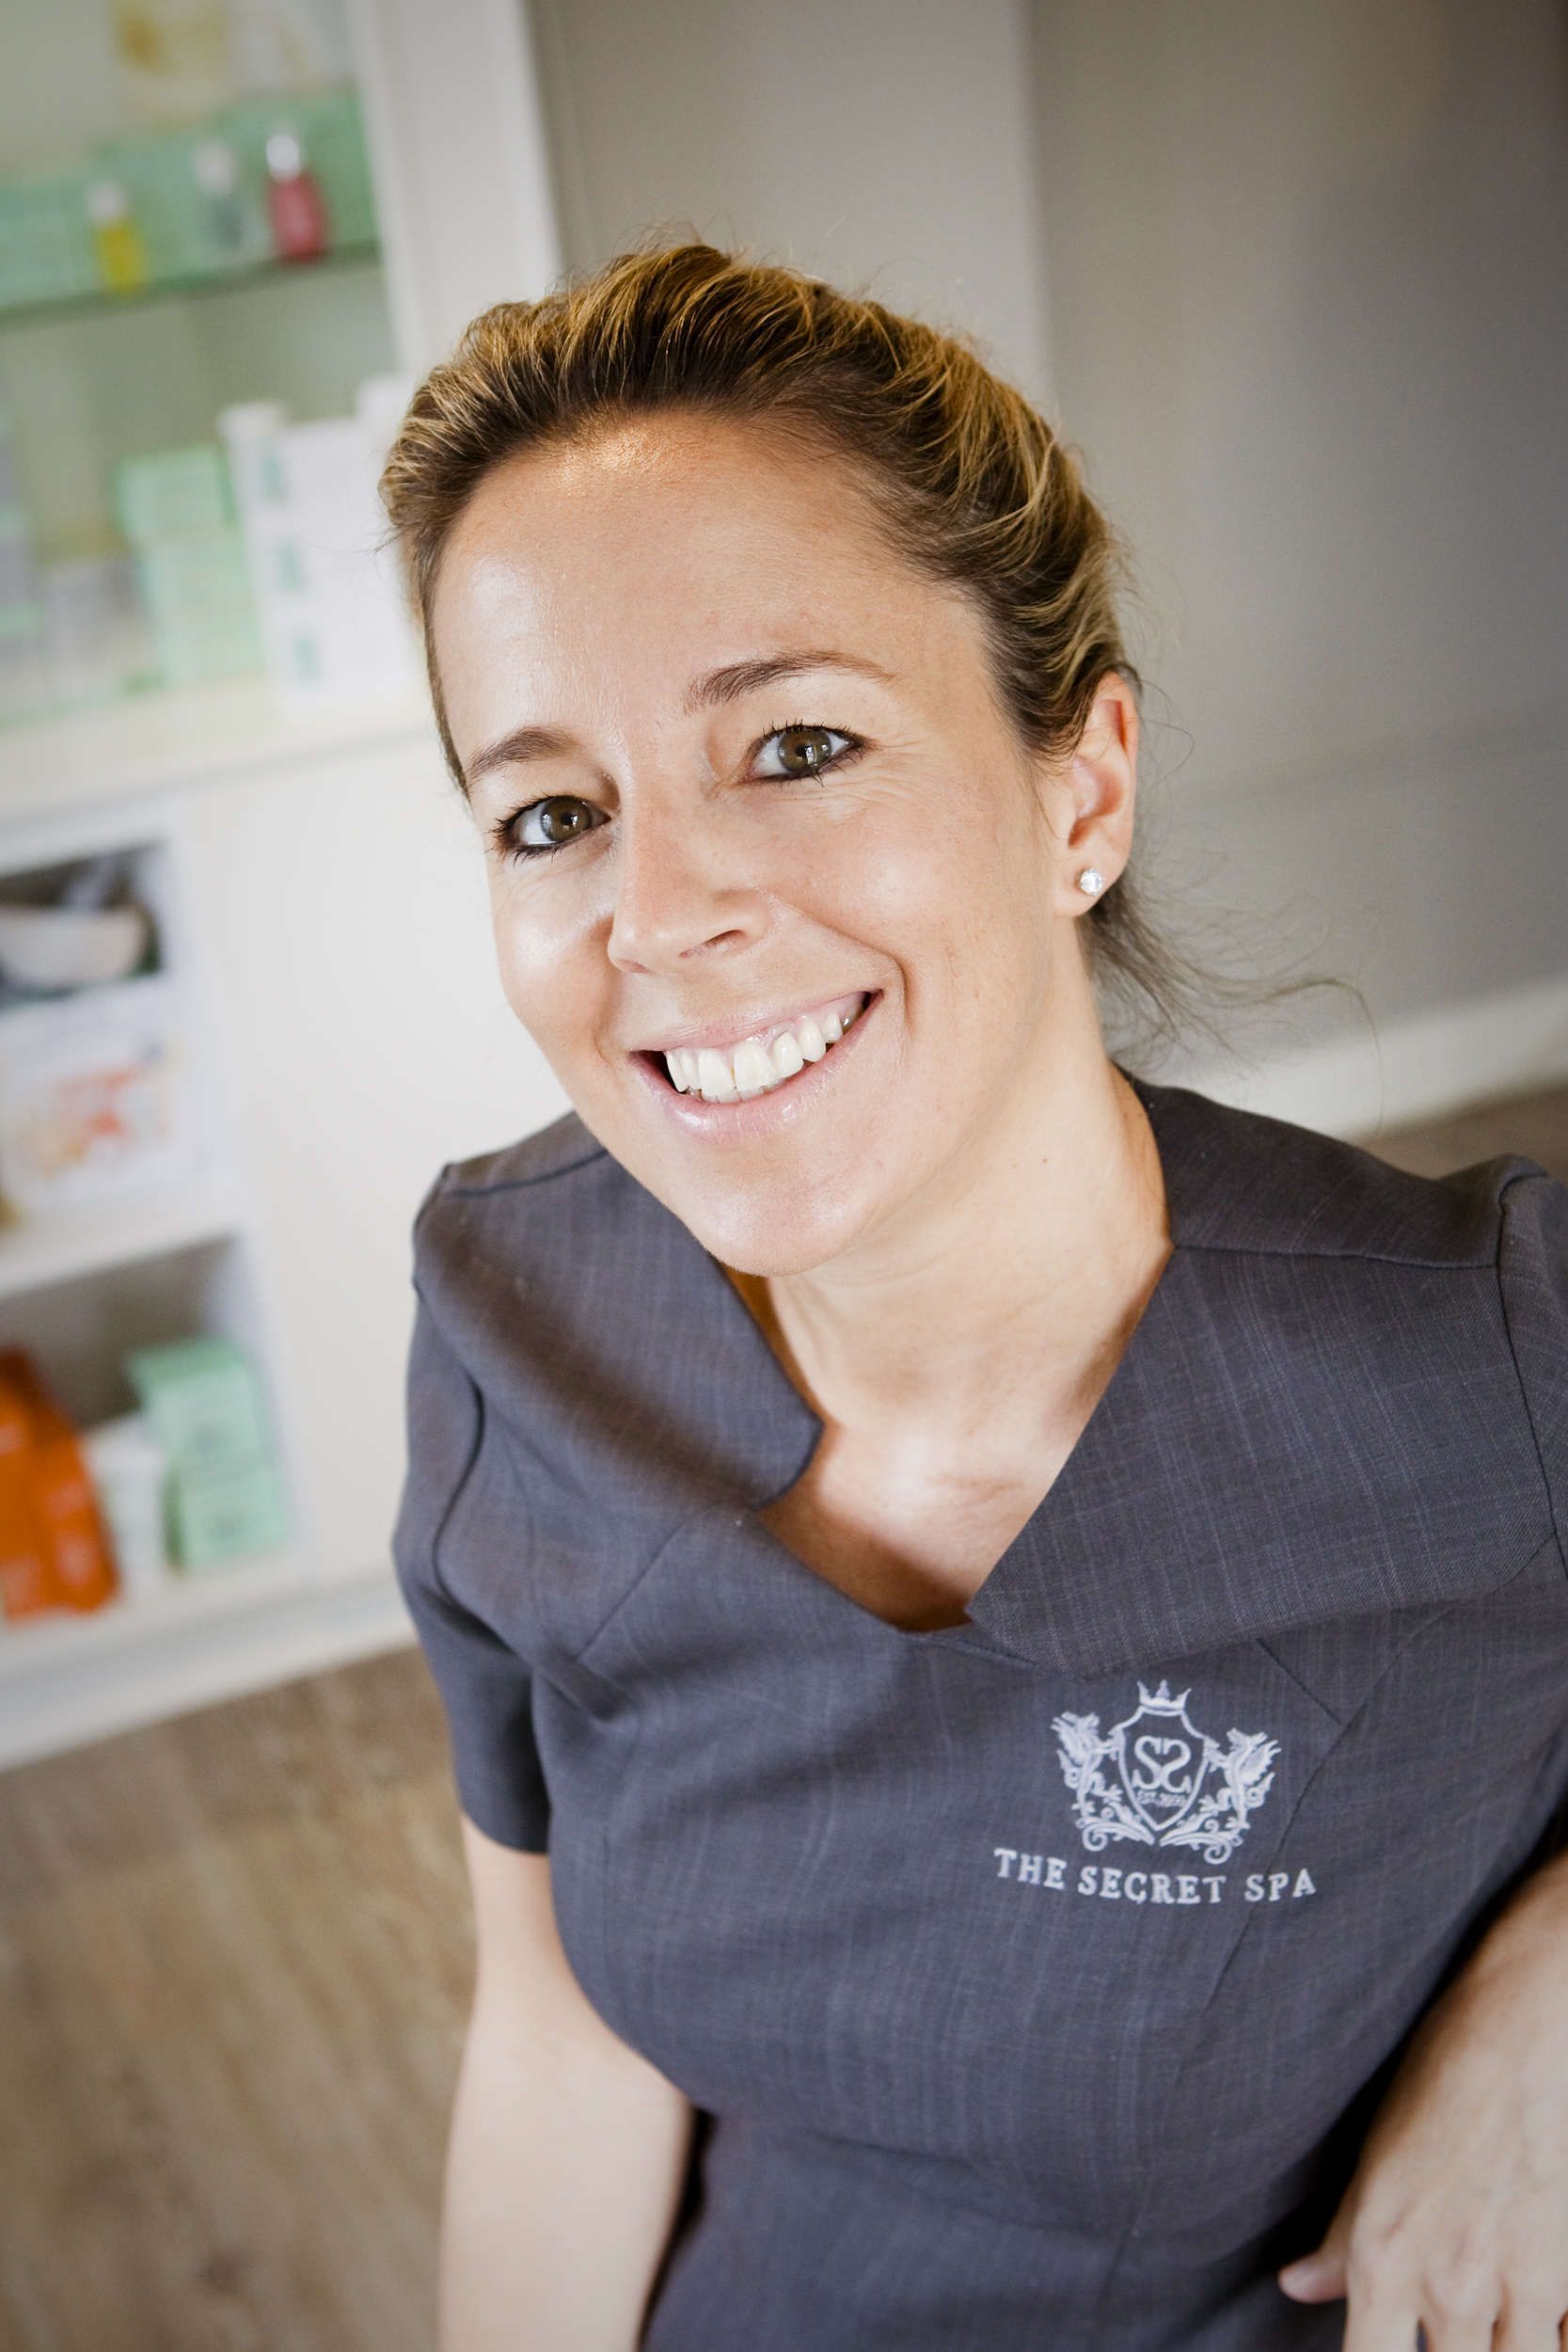 Becky   As founder of the Secret Spa and with 21 years of experience in the beauty industry, Becky is a specialist in skin therapy. With a babtec facialist and beauty therapist award to her name, Becky has created her own treatment 'The Signature Facial' which she is renowned for. The signature Facial uses specialist techniques to relax the body and mind, and Darphin facial products to treat any skin concern.